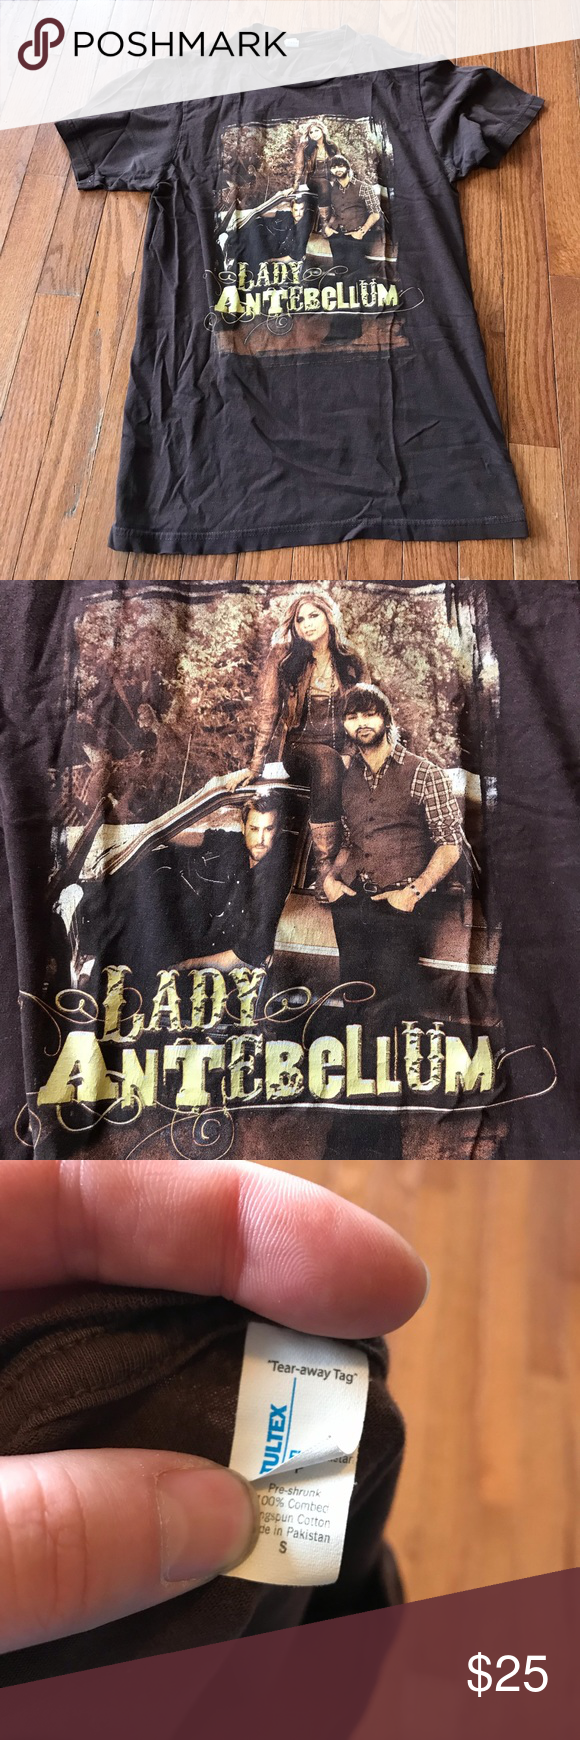 Lady Antebellum Concert Tee Size Small There are no rips